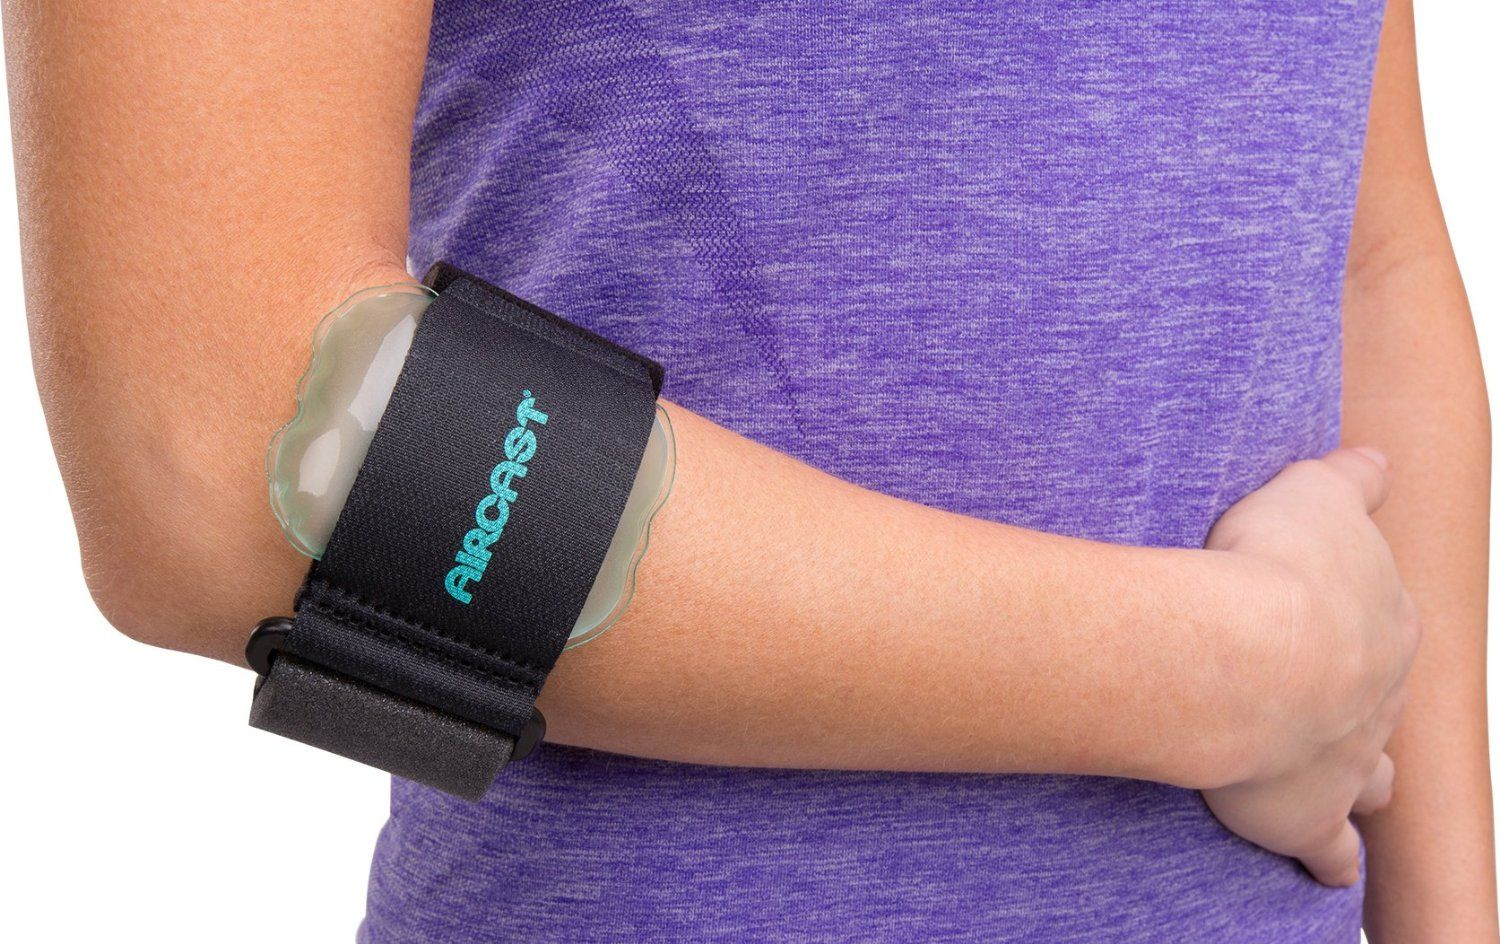 Aircast Pneumatic Armband Tennis Golfers Elbow Support Strap One Size Fits Most Remarkable Product Available Now Sports First Aid Golfers Elbow